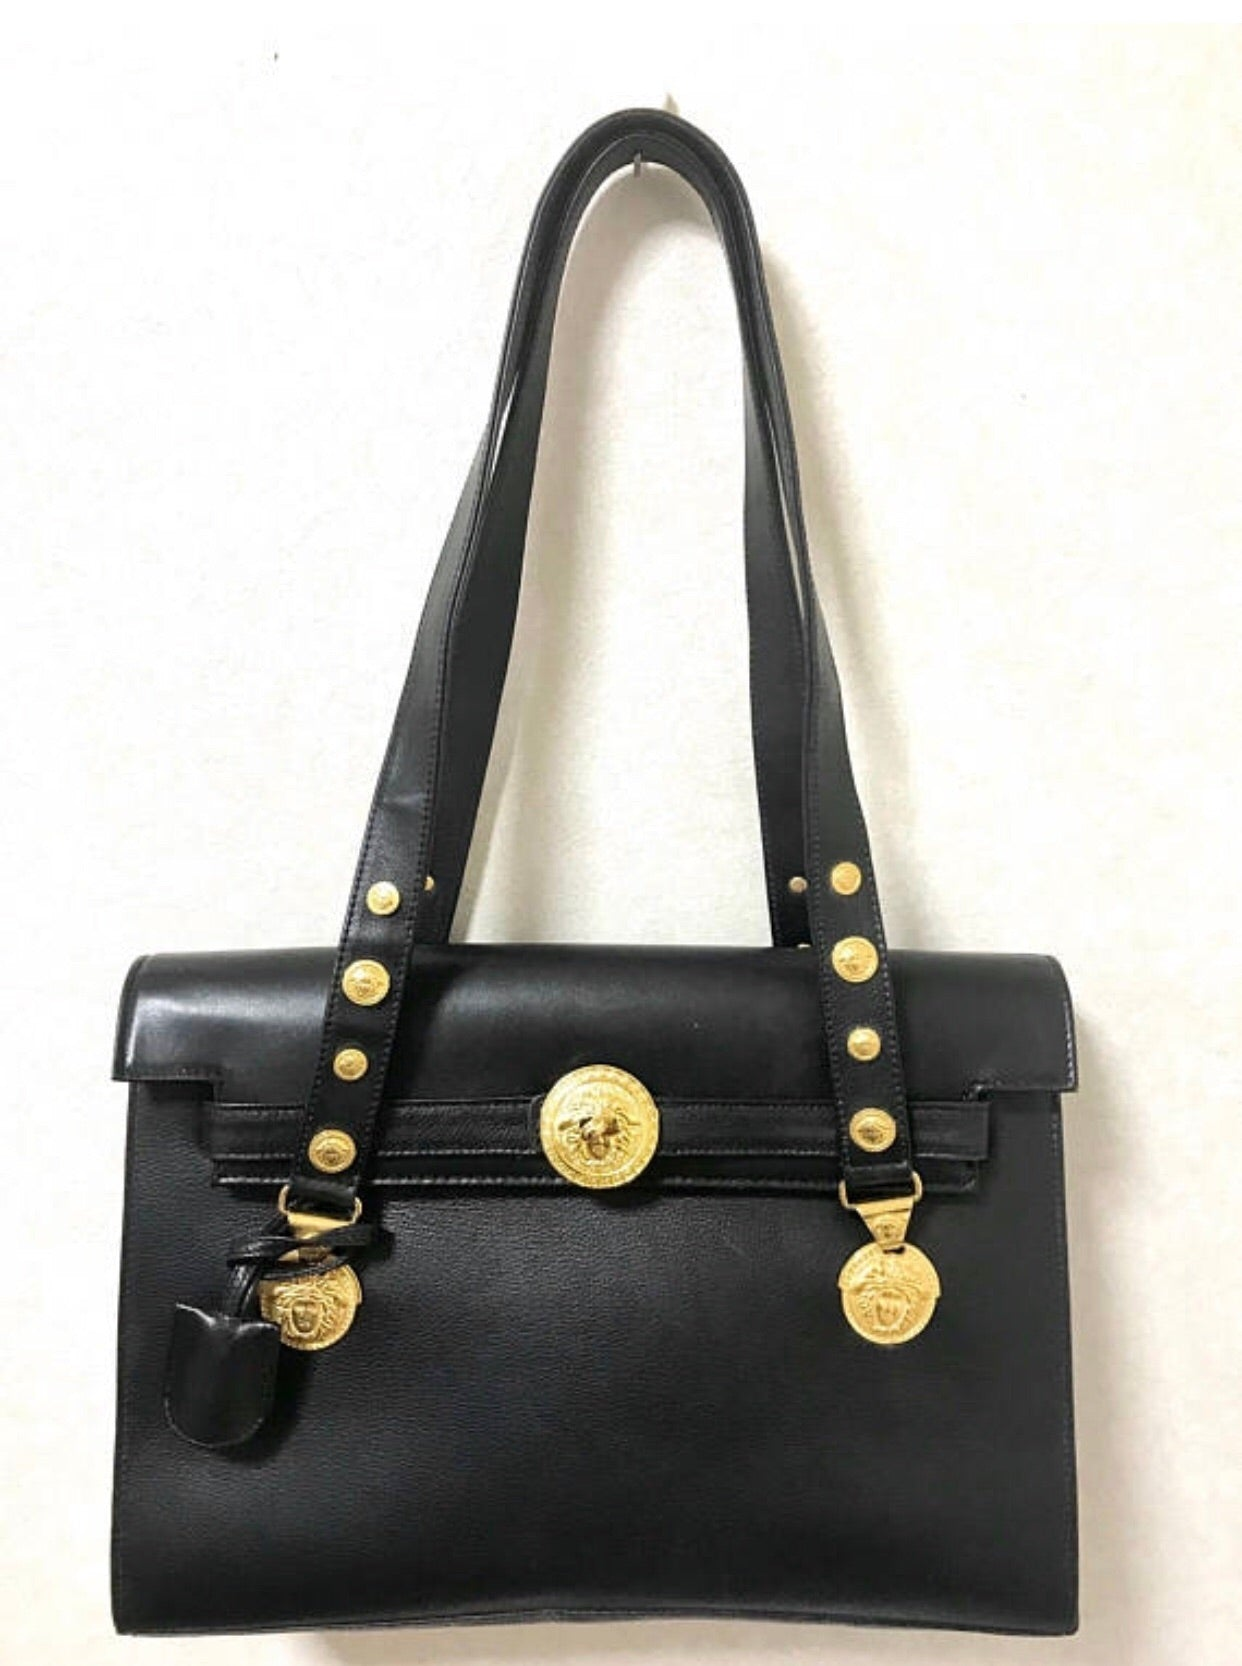 c25e9269319c Vintage Gianni Versace black leather Kelly bag style shoulder tote bag with  golden medusa motifs and